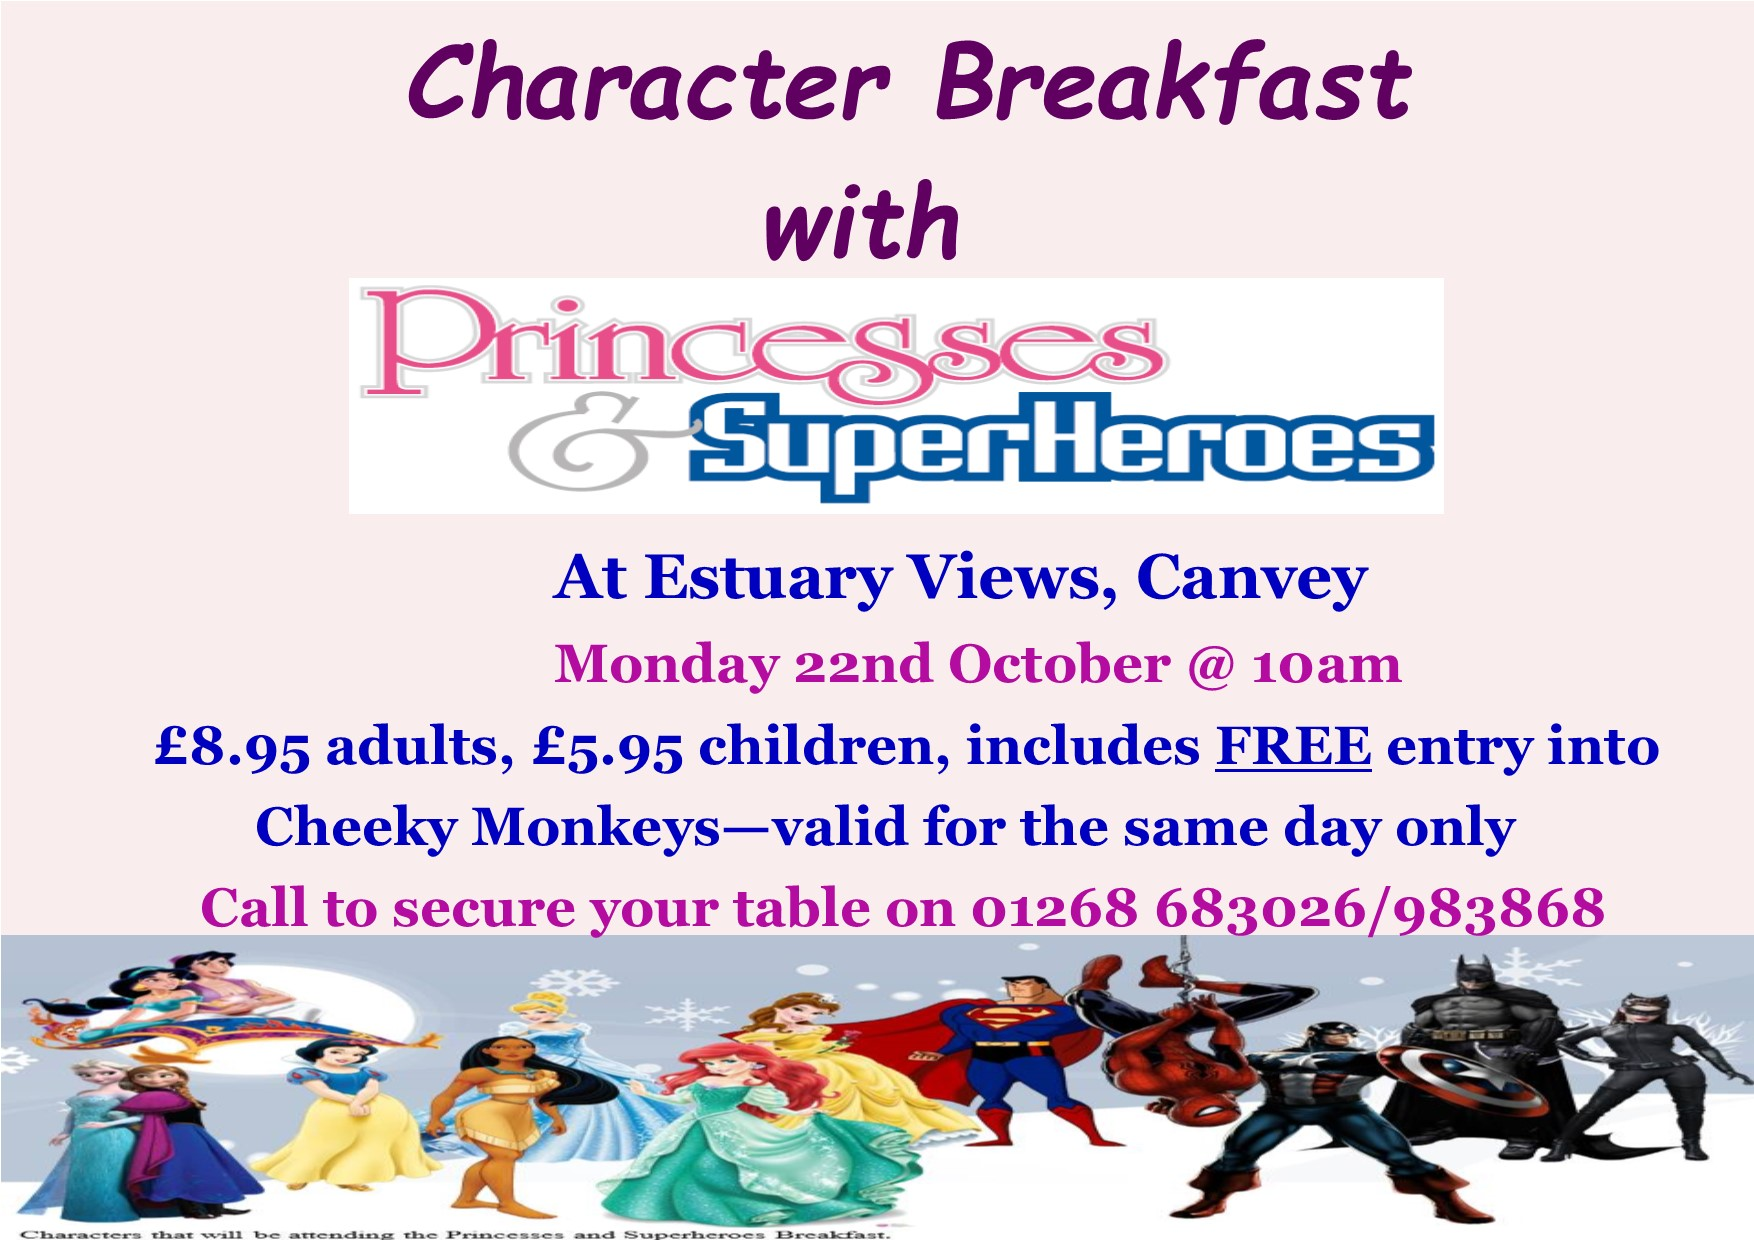 Princesses & Superheroes Character Breakfast